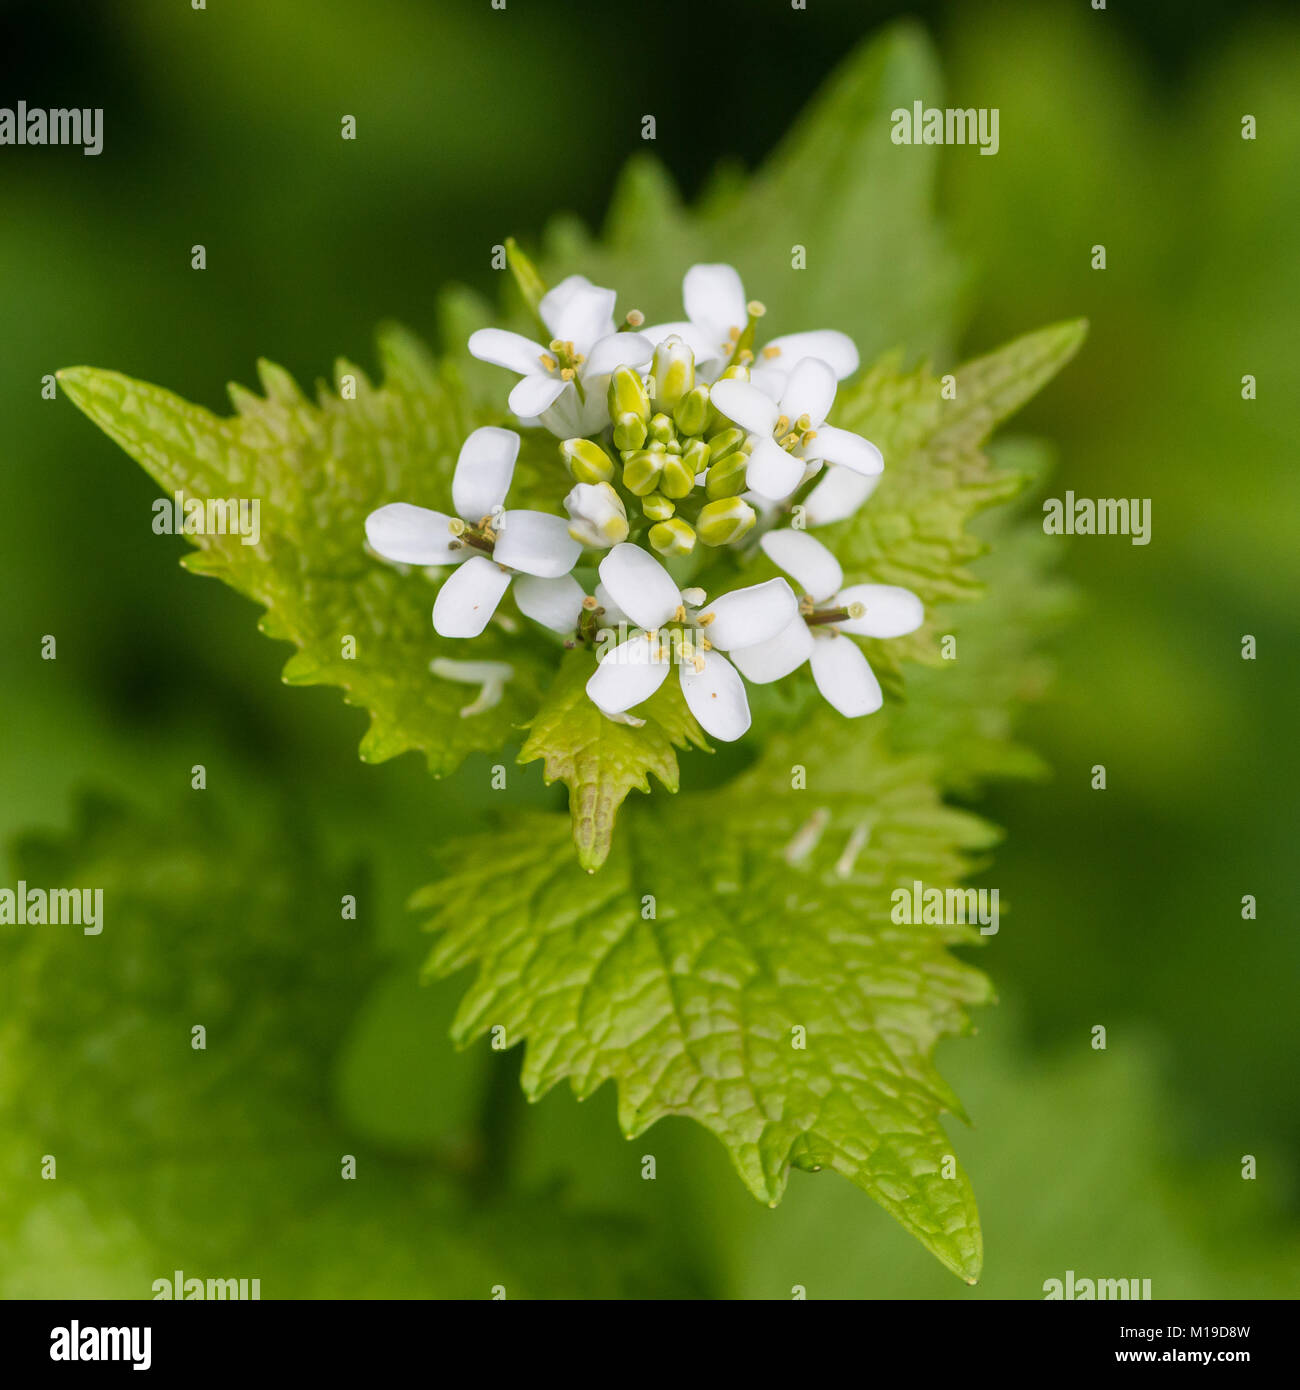 Mustard Green Flowers Stock Photos Mustard Green Flowers Stock